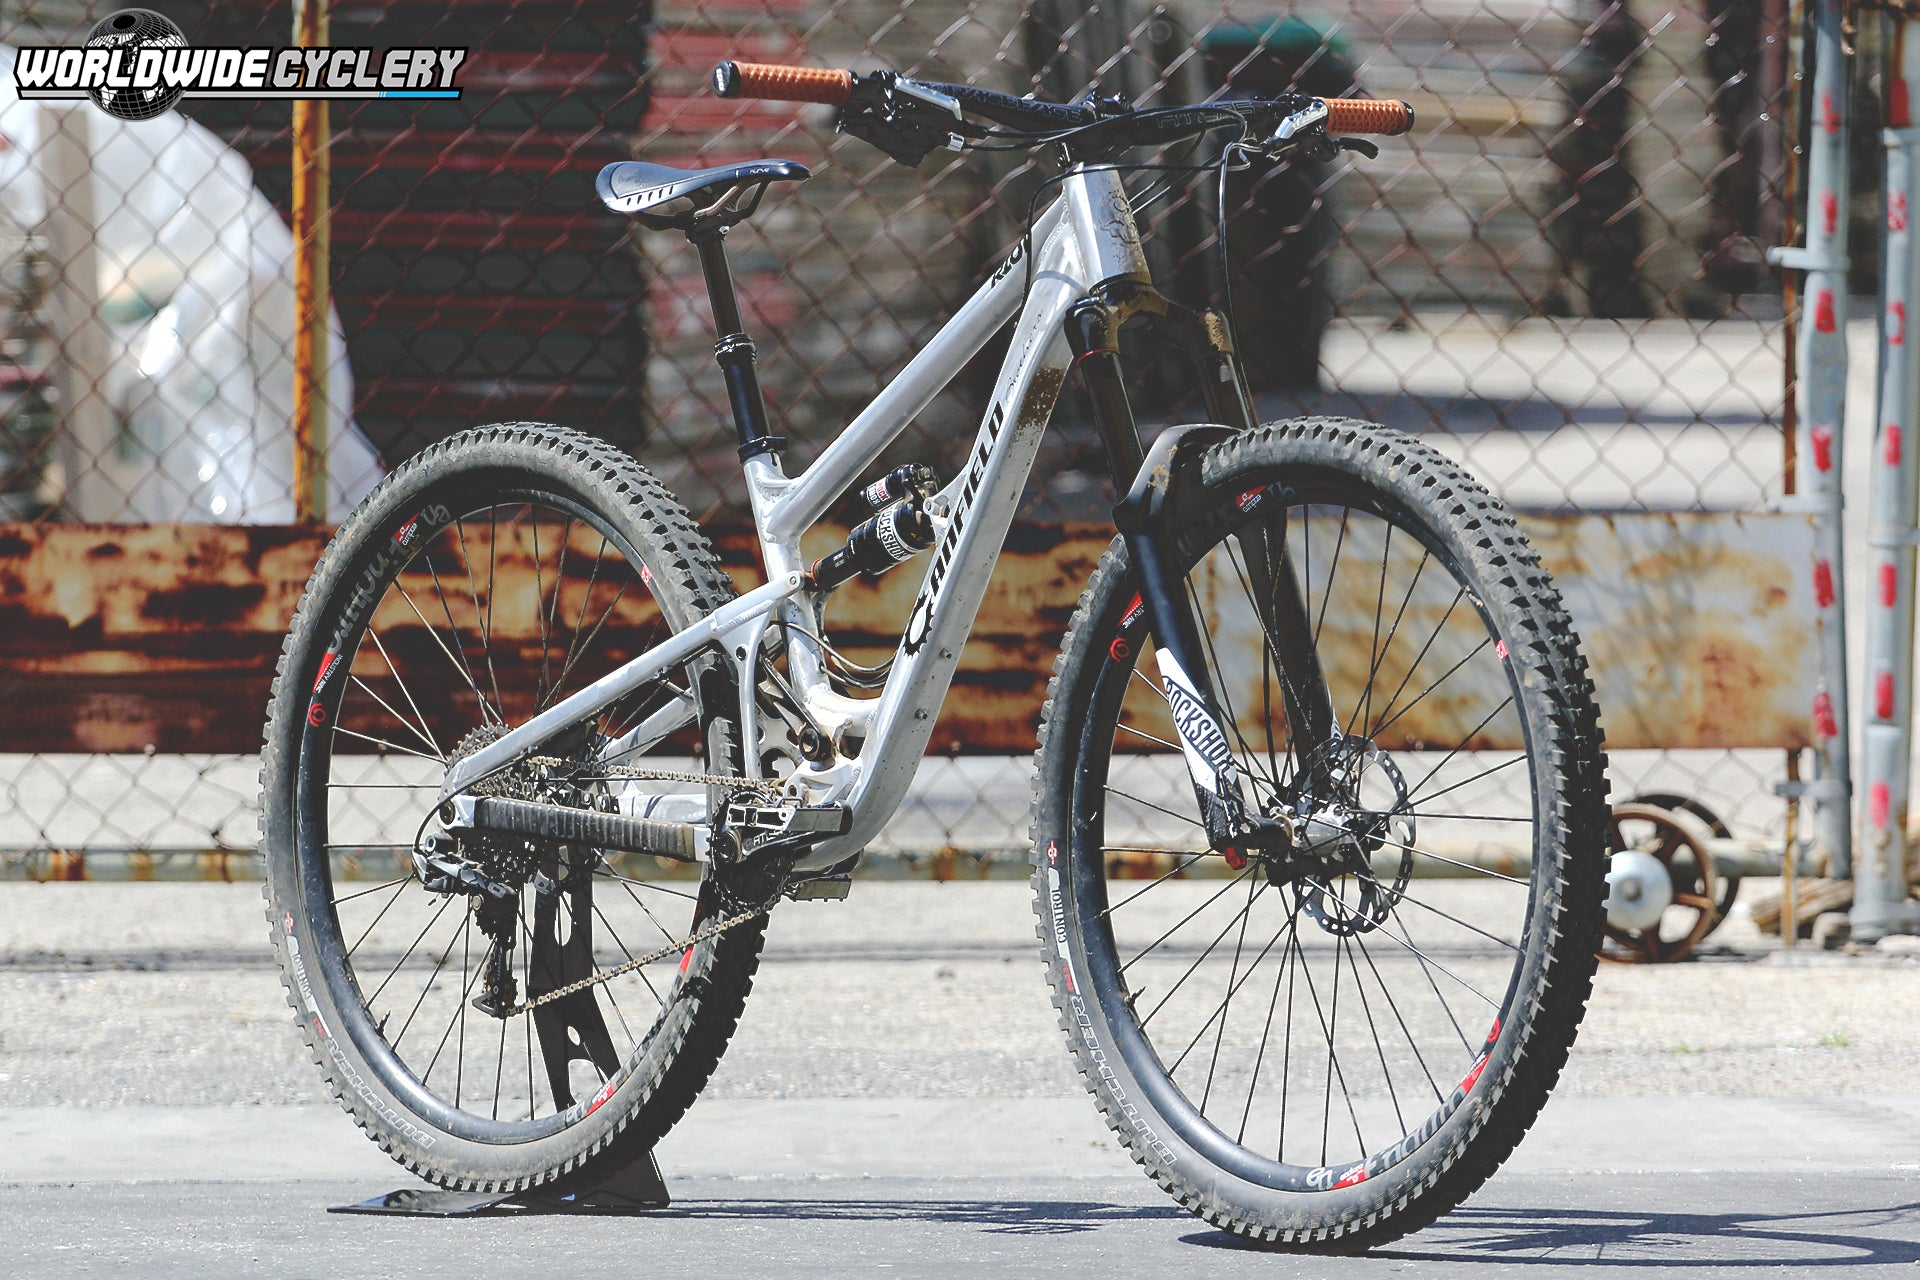 Canfield Riot - Worldwide Cyclery